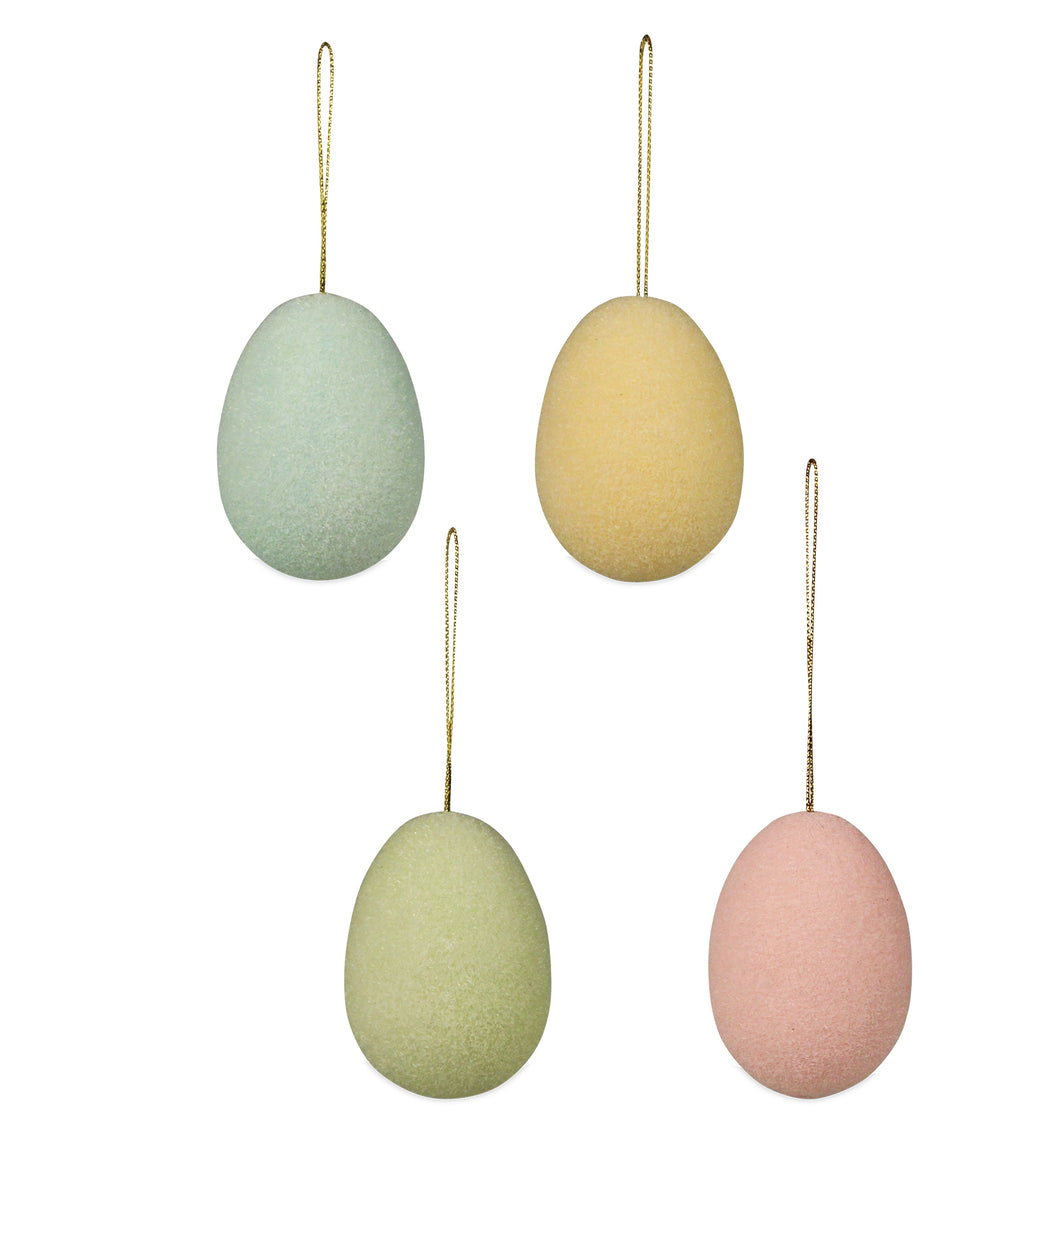 LC7045 - Pastel Flocked Egg Ornament Medium